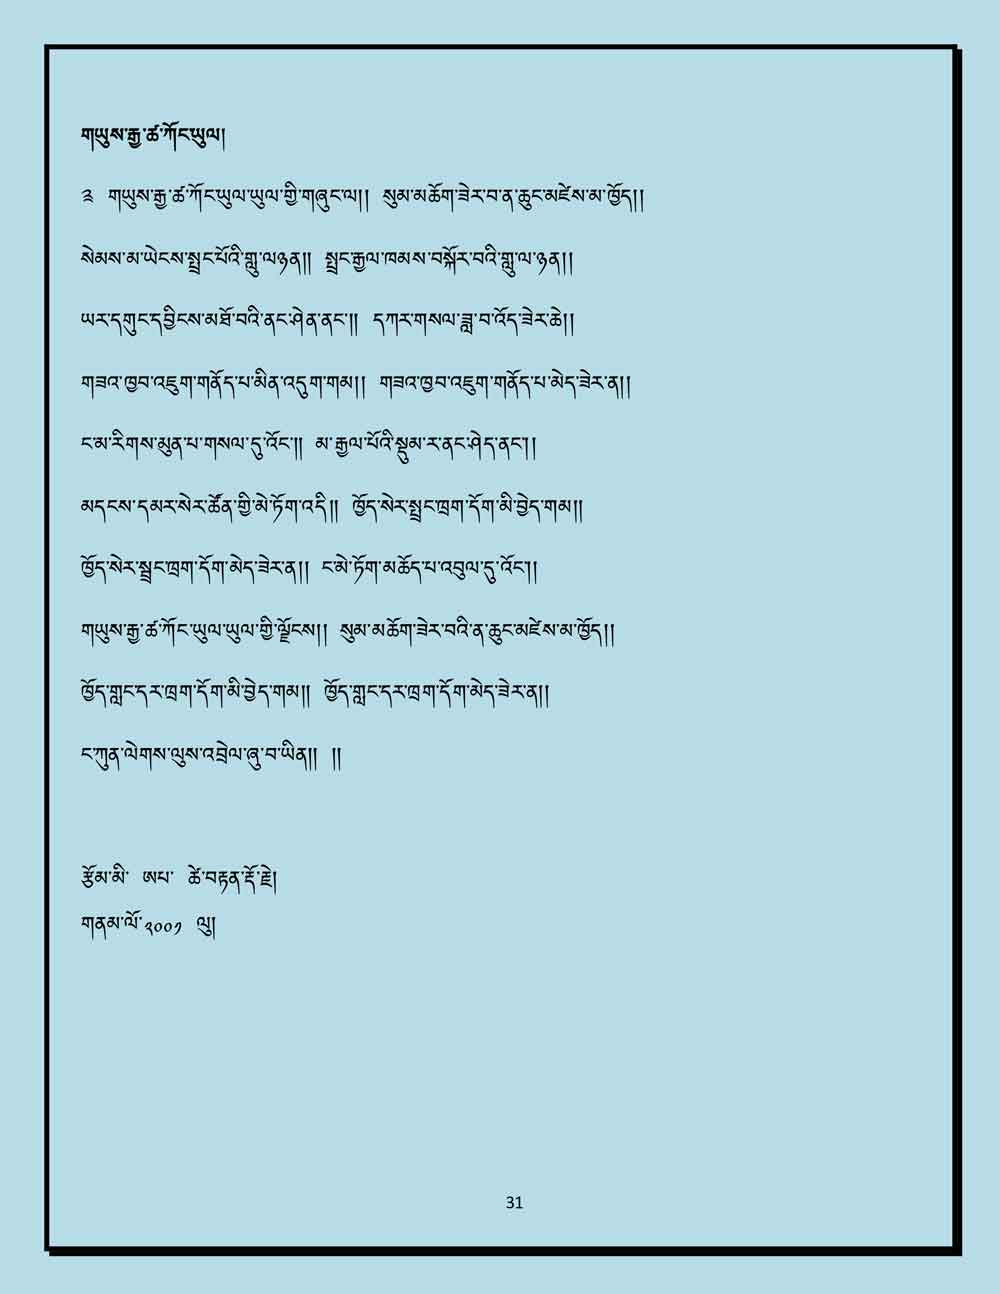 Ap-Tseten-Lyrics-31.jpg